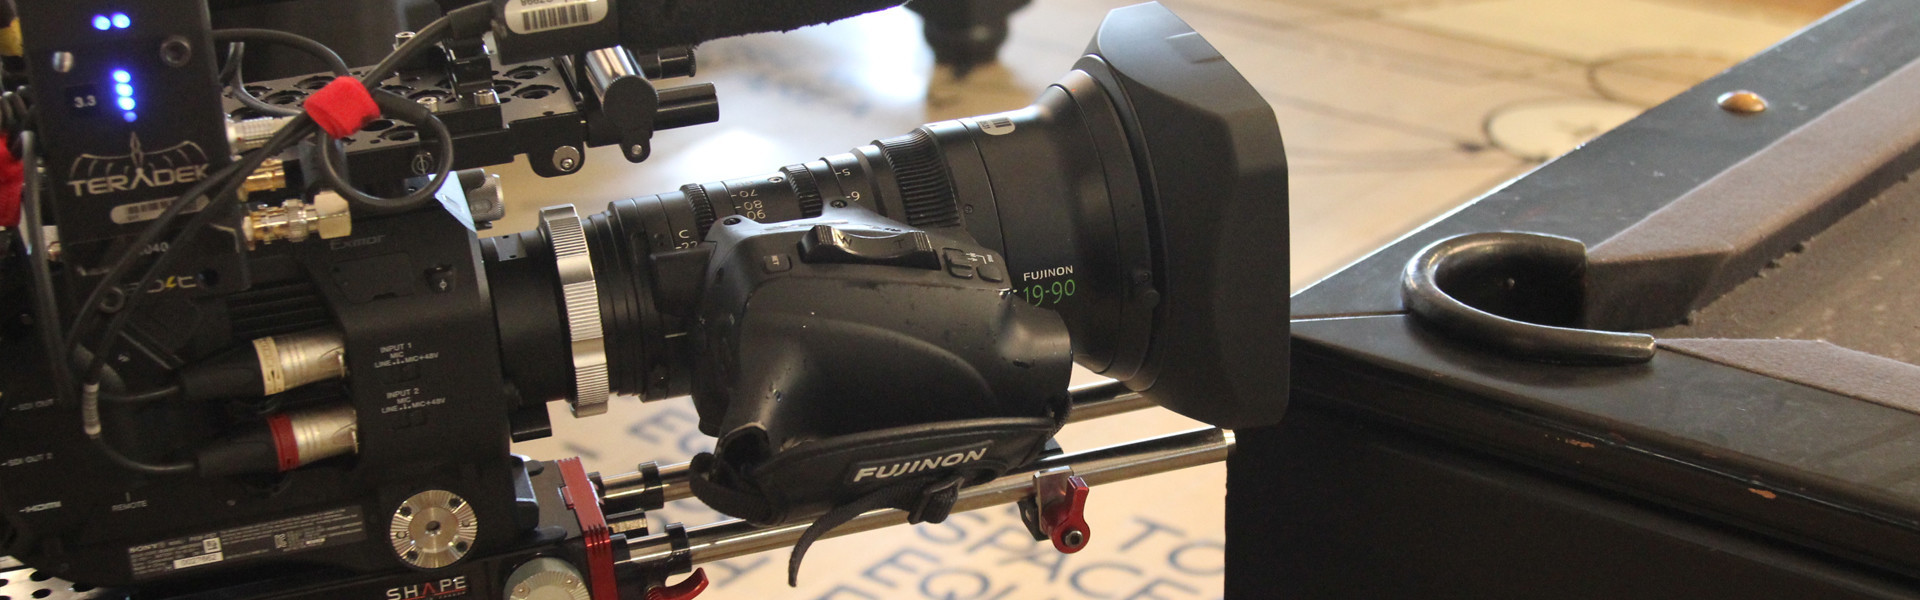 Header image for article Fujinon's New 19-90 T2.9 Cabrio 35PL Zoom Lens